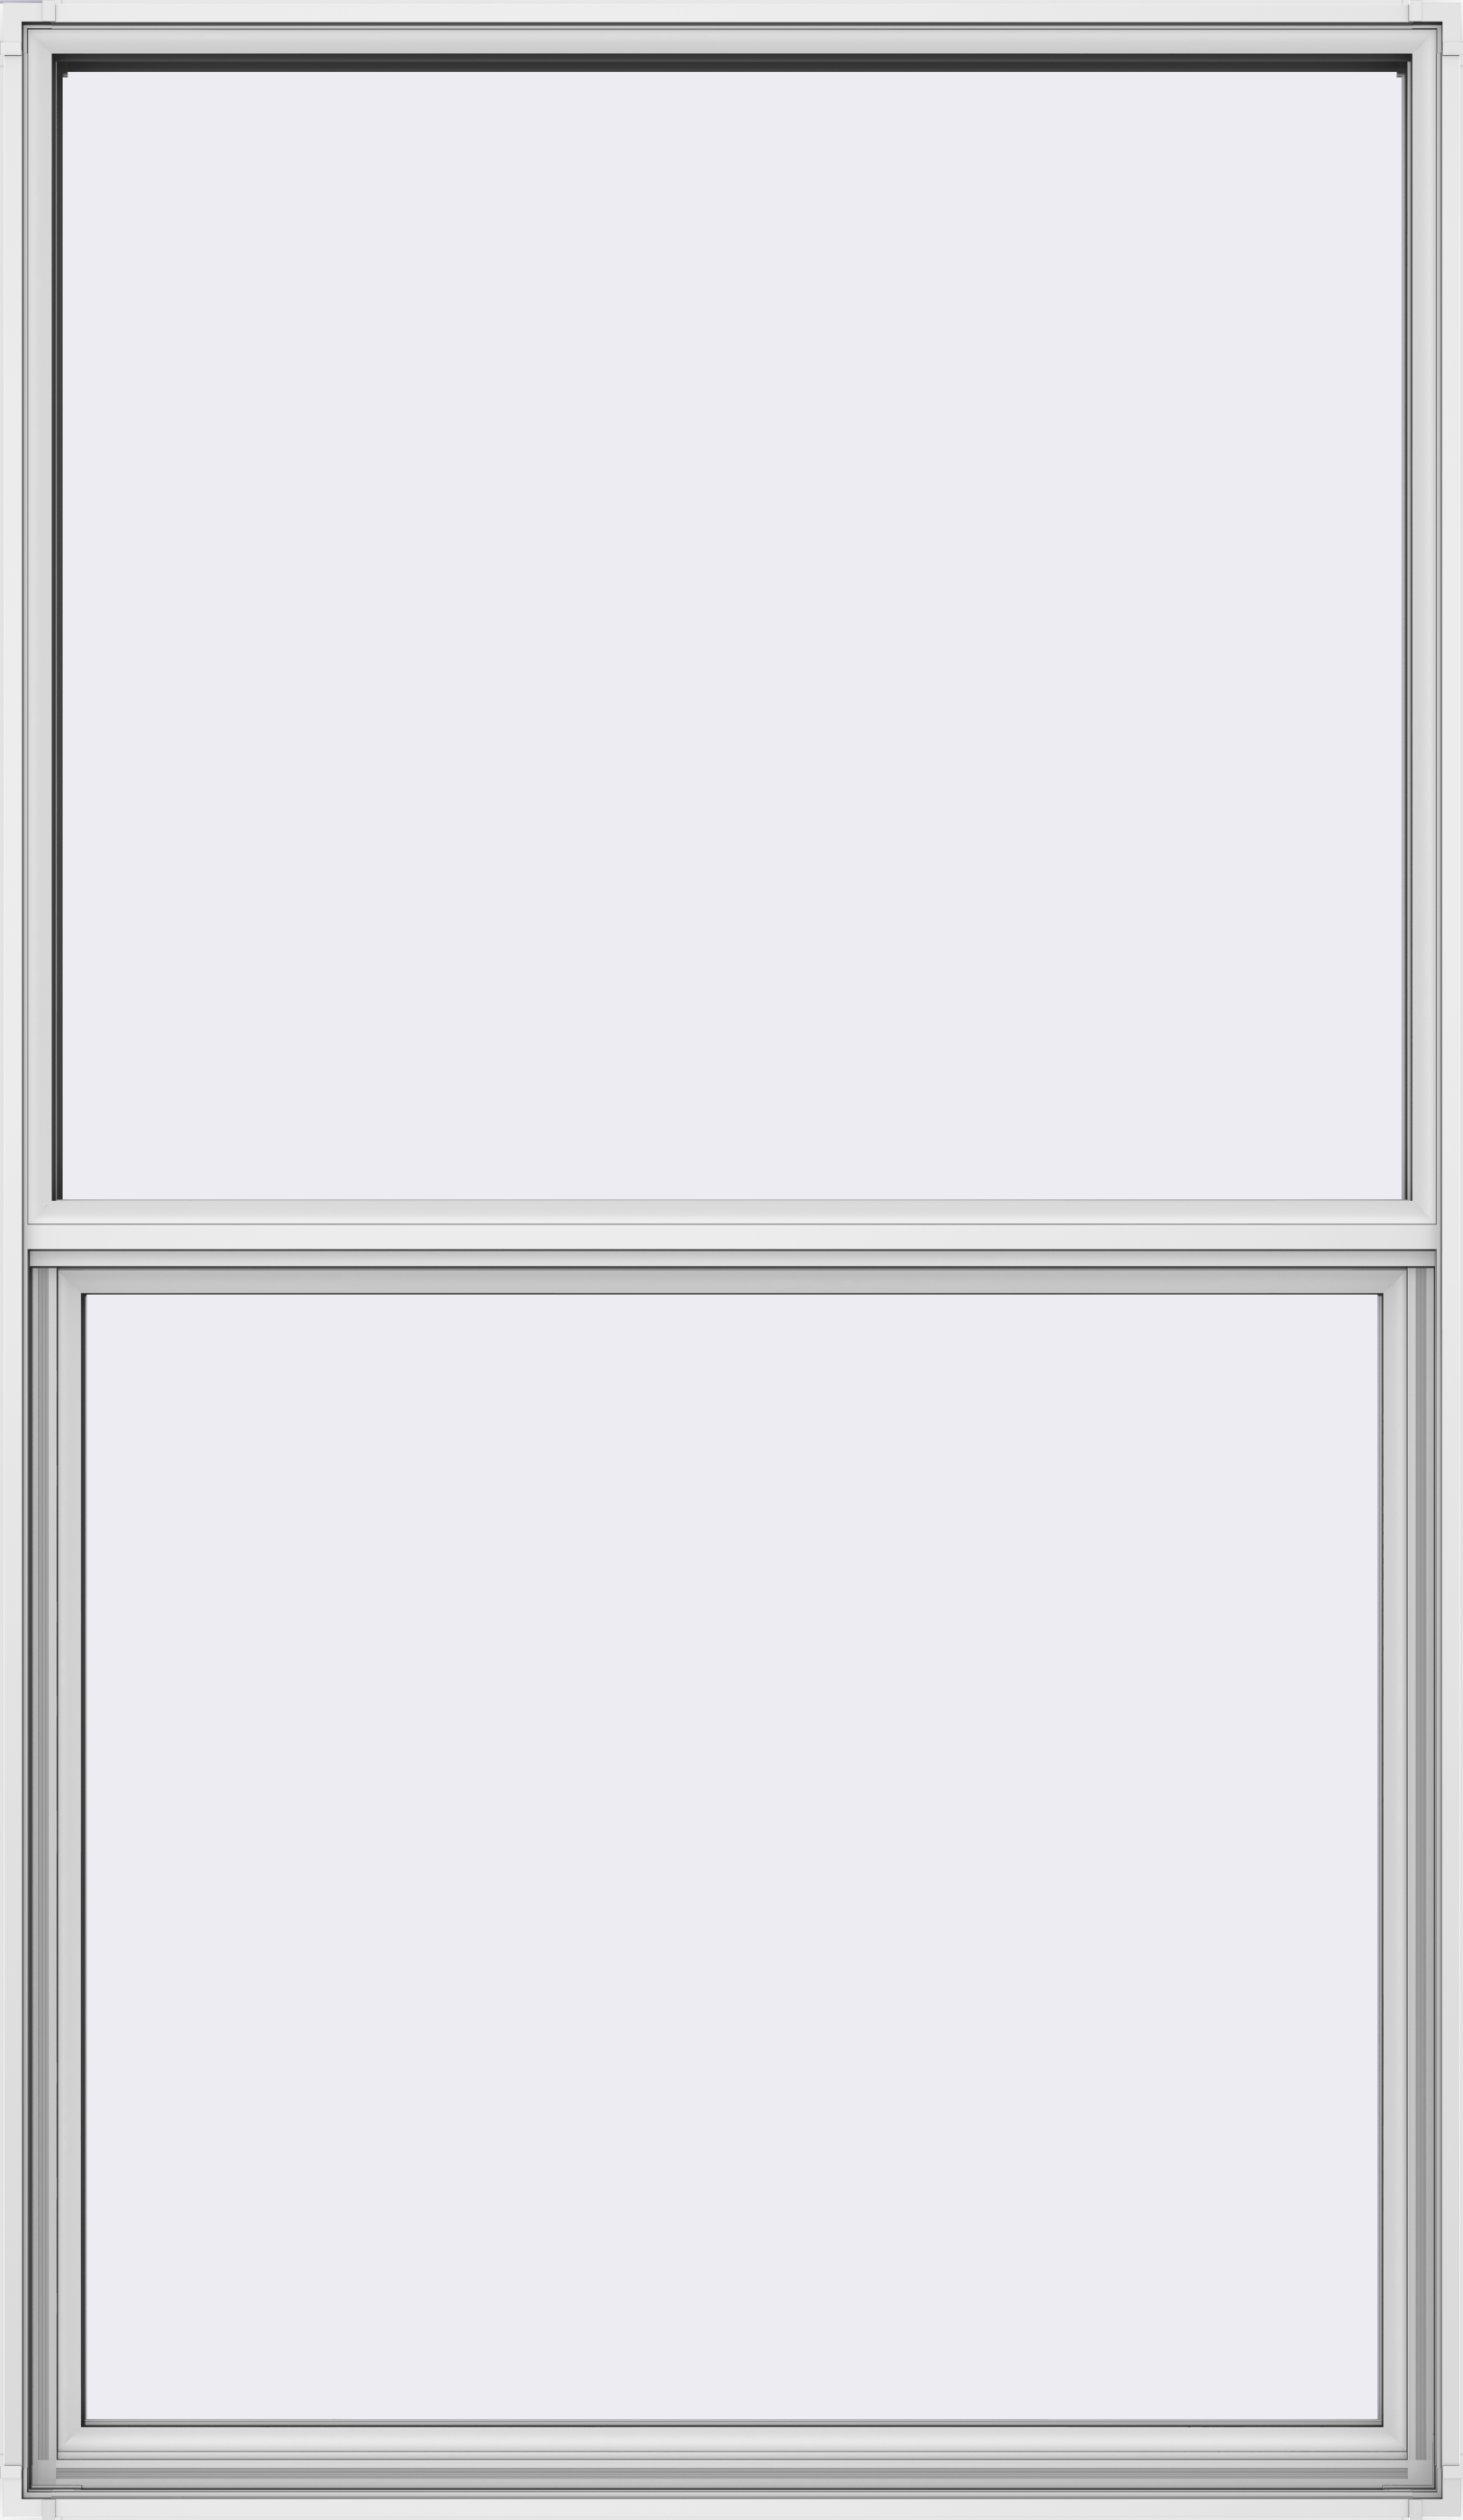 Builders Aluminum Single-Hung Window | JELD-WEN Windows & Doors